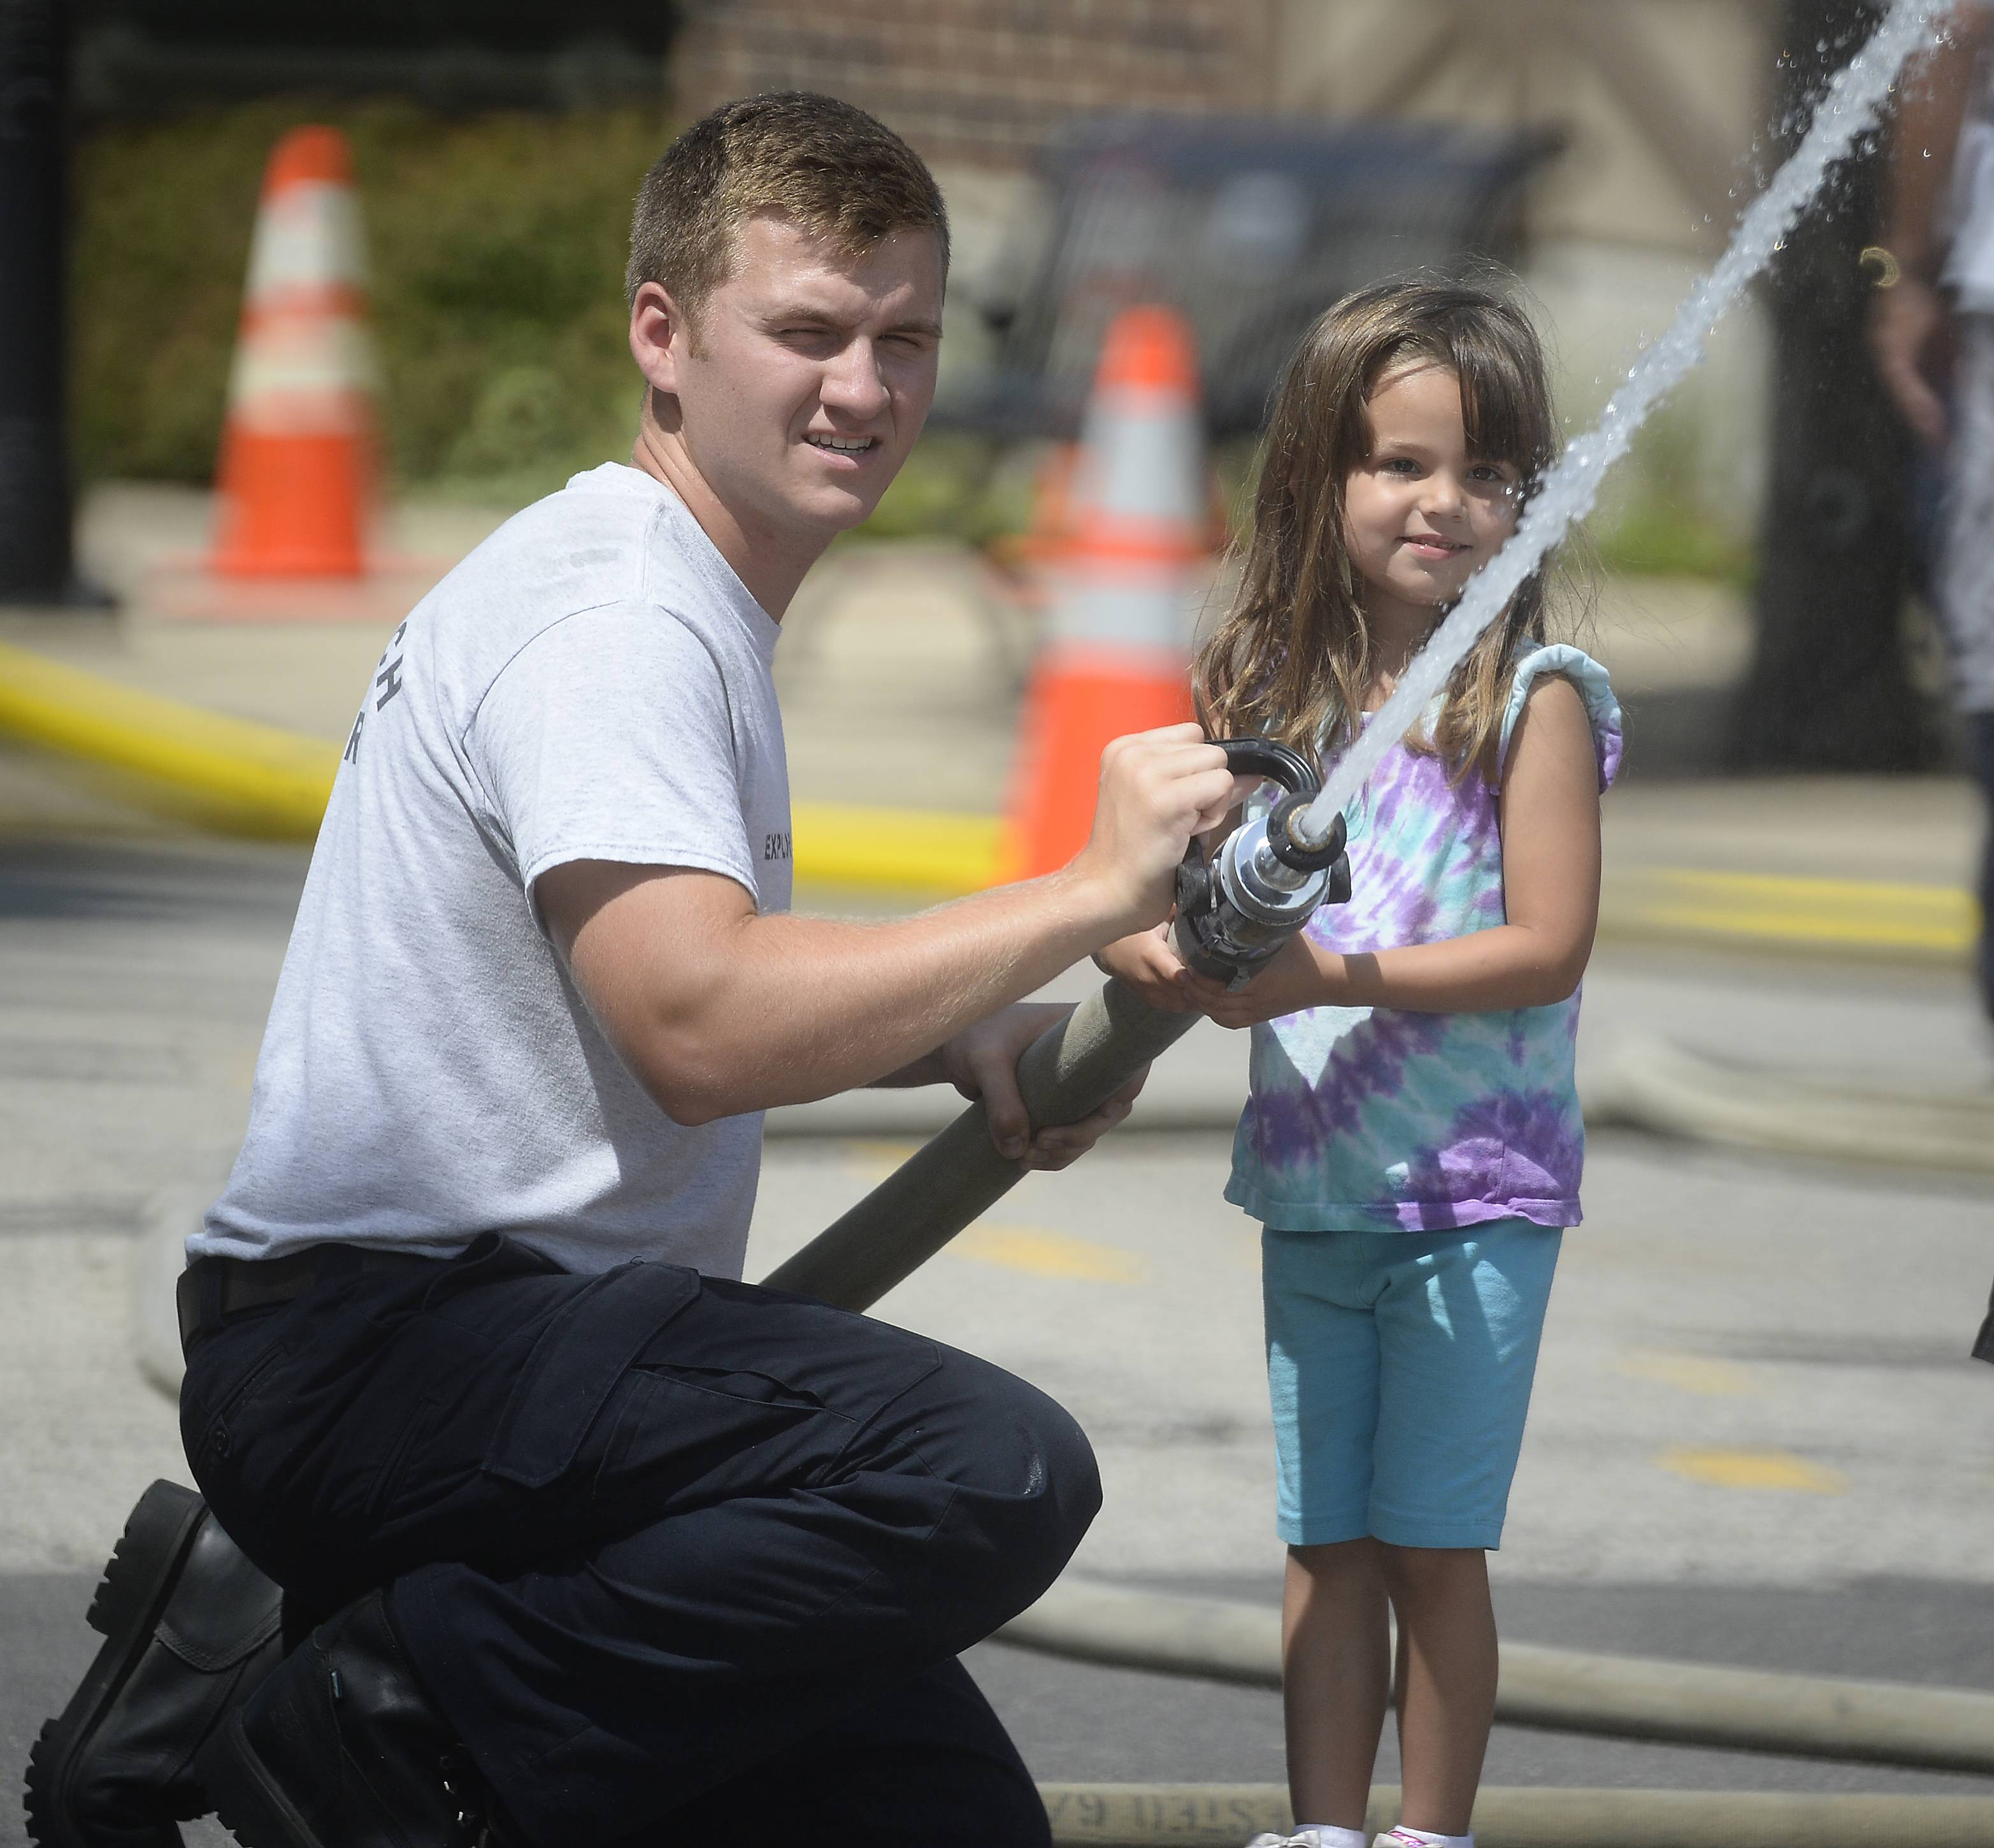 Jack Logan of the Lake Zurich fire department Explorers helps Brooklyn Strauss, 4, of Hawthorn Woods master the fire hose before the water fight battles started at Lake Zurich's Alpine Festival on Saturday.